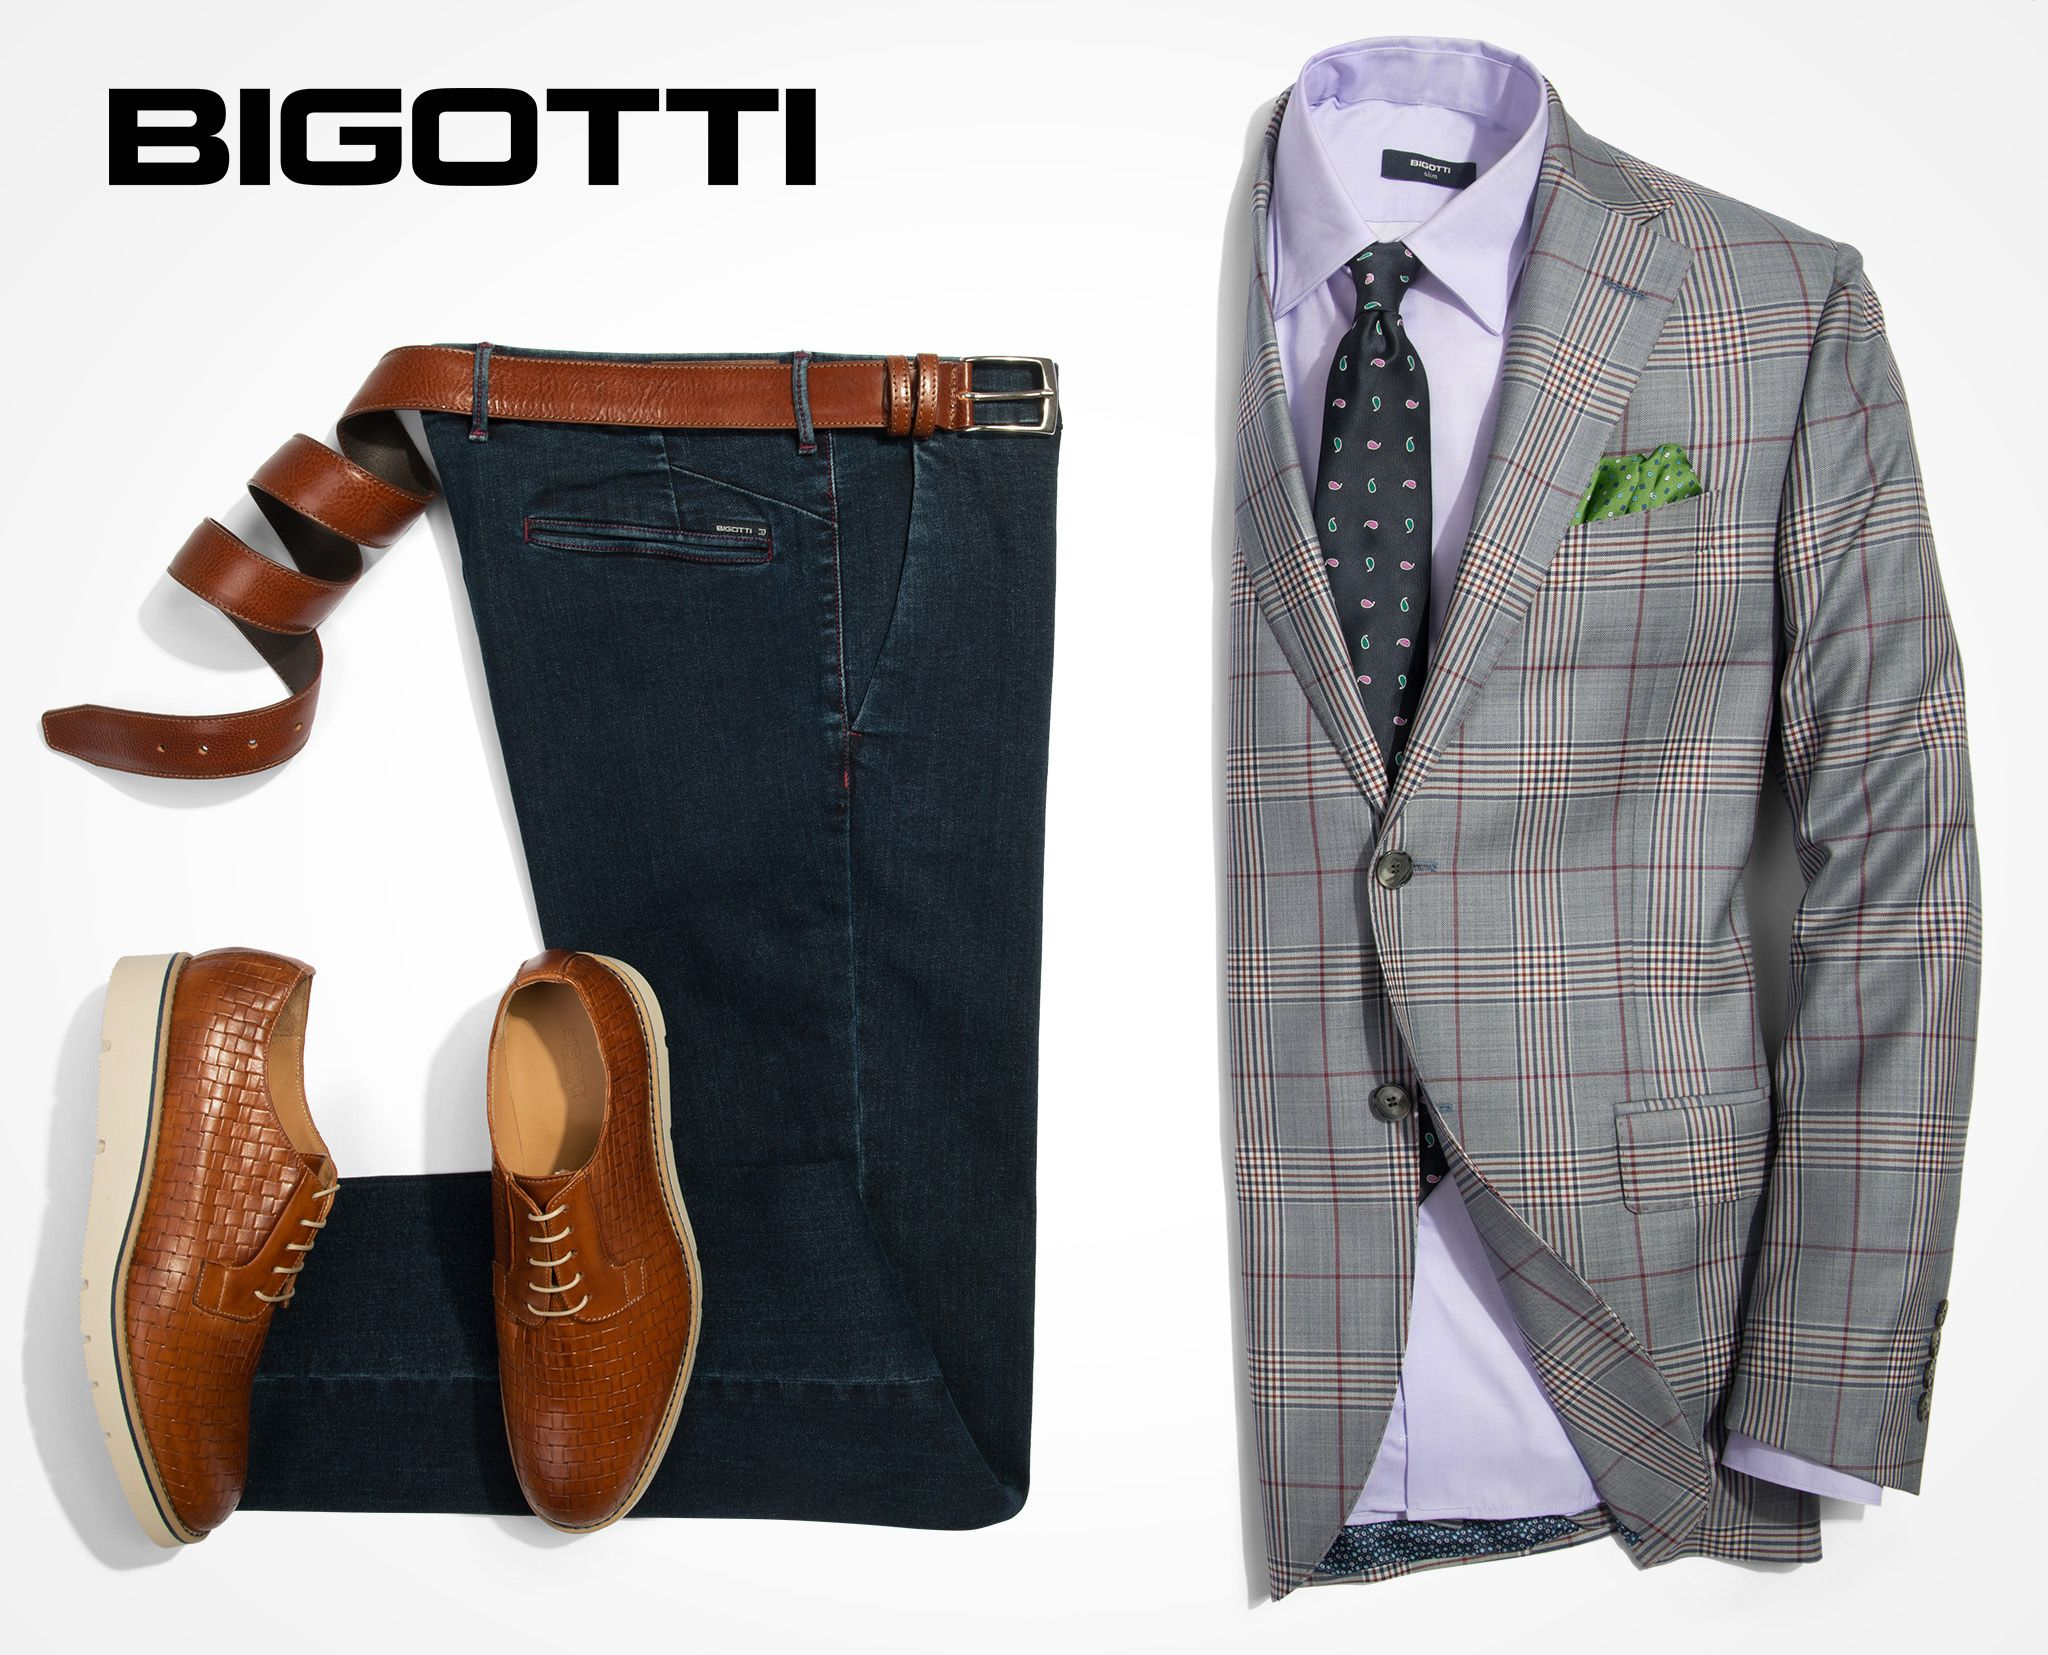 f25f89d404 The #blazer, #indigo #jeans & #brown #shoes – a #classic #combination for a  #smartcasual #look #Browse and #shop in #Bigotti #men #clothing #stores and  on ...